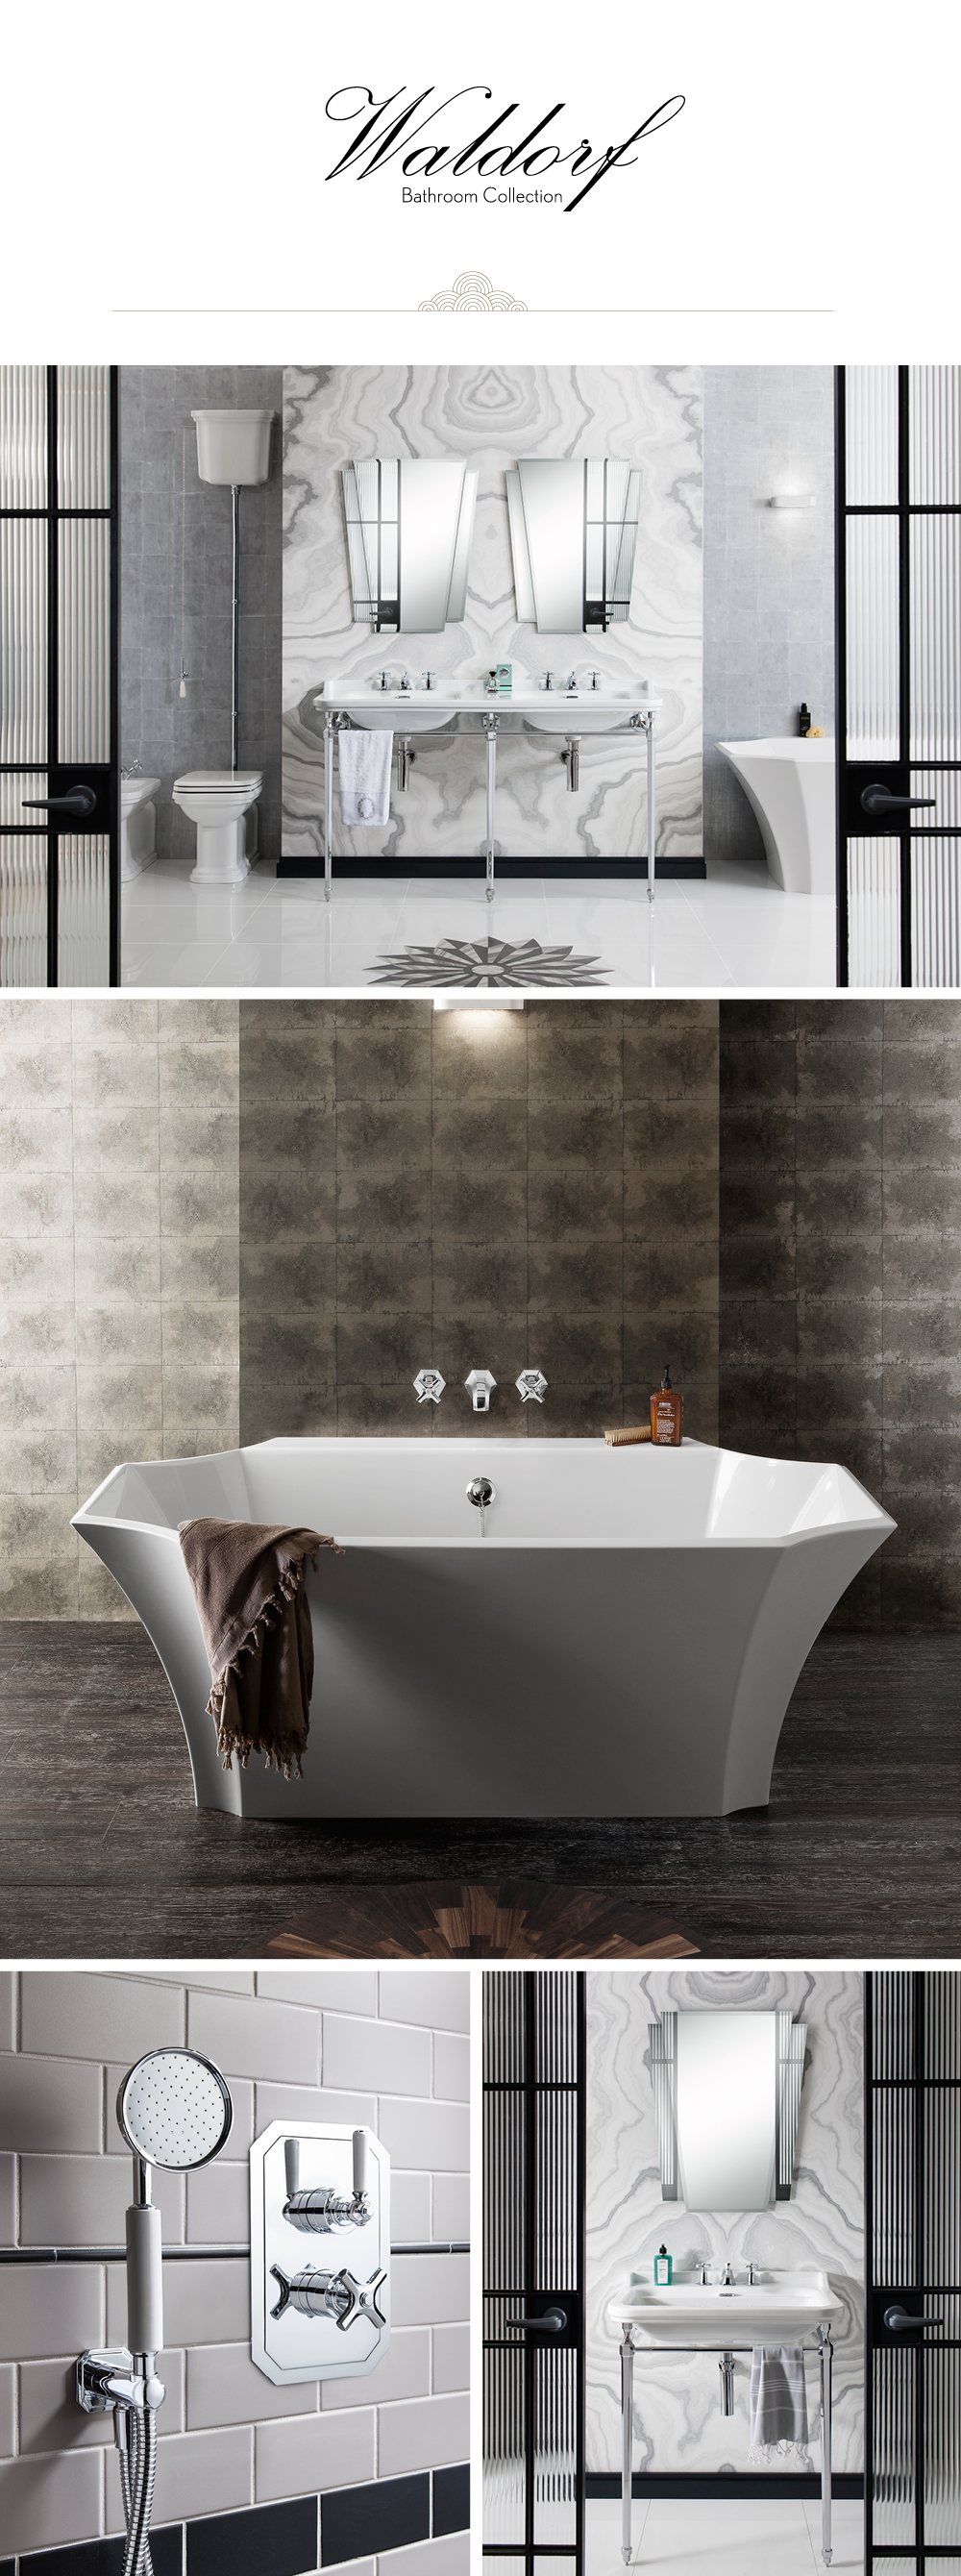 Introducing Waldorf - The First Complete Bathroom Collection from ...